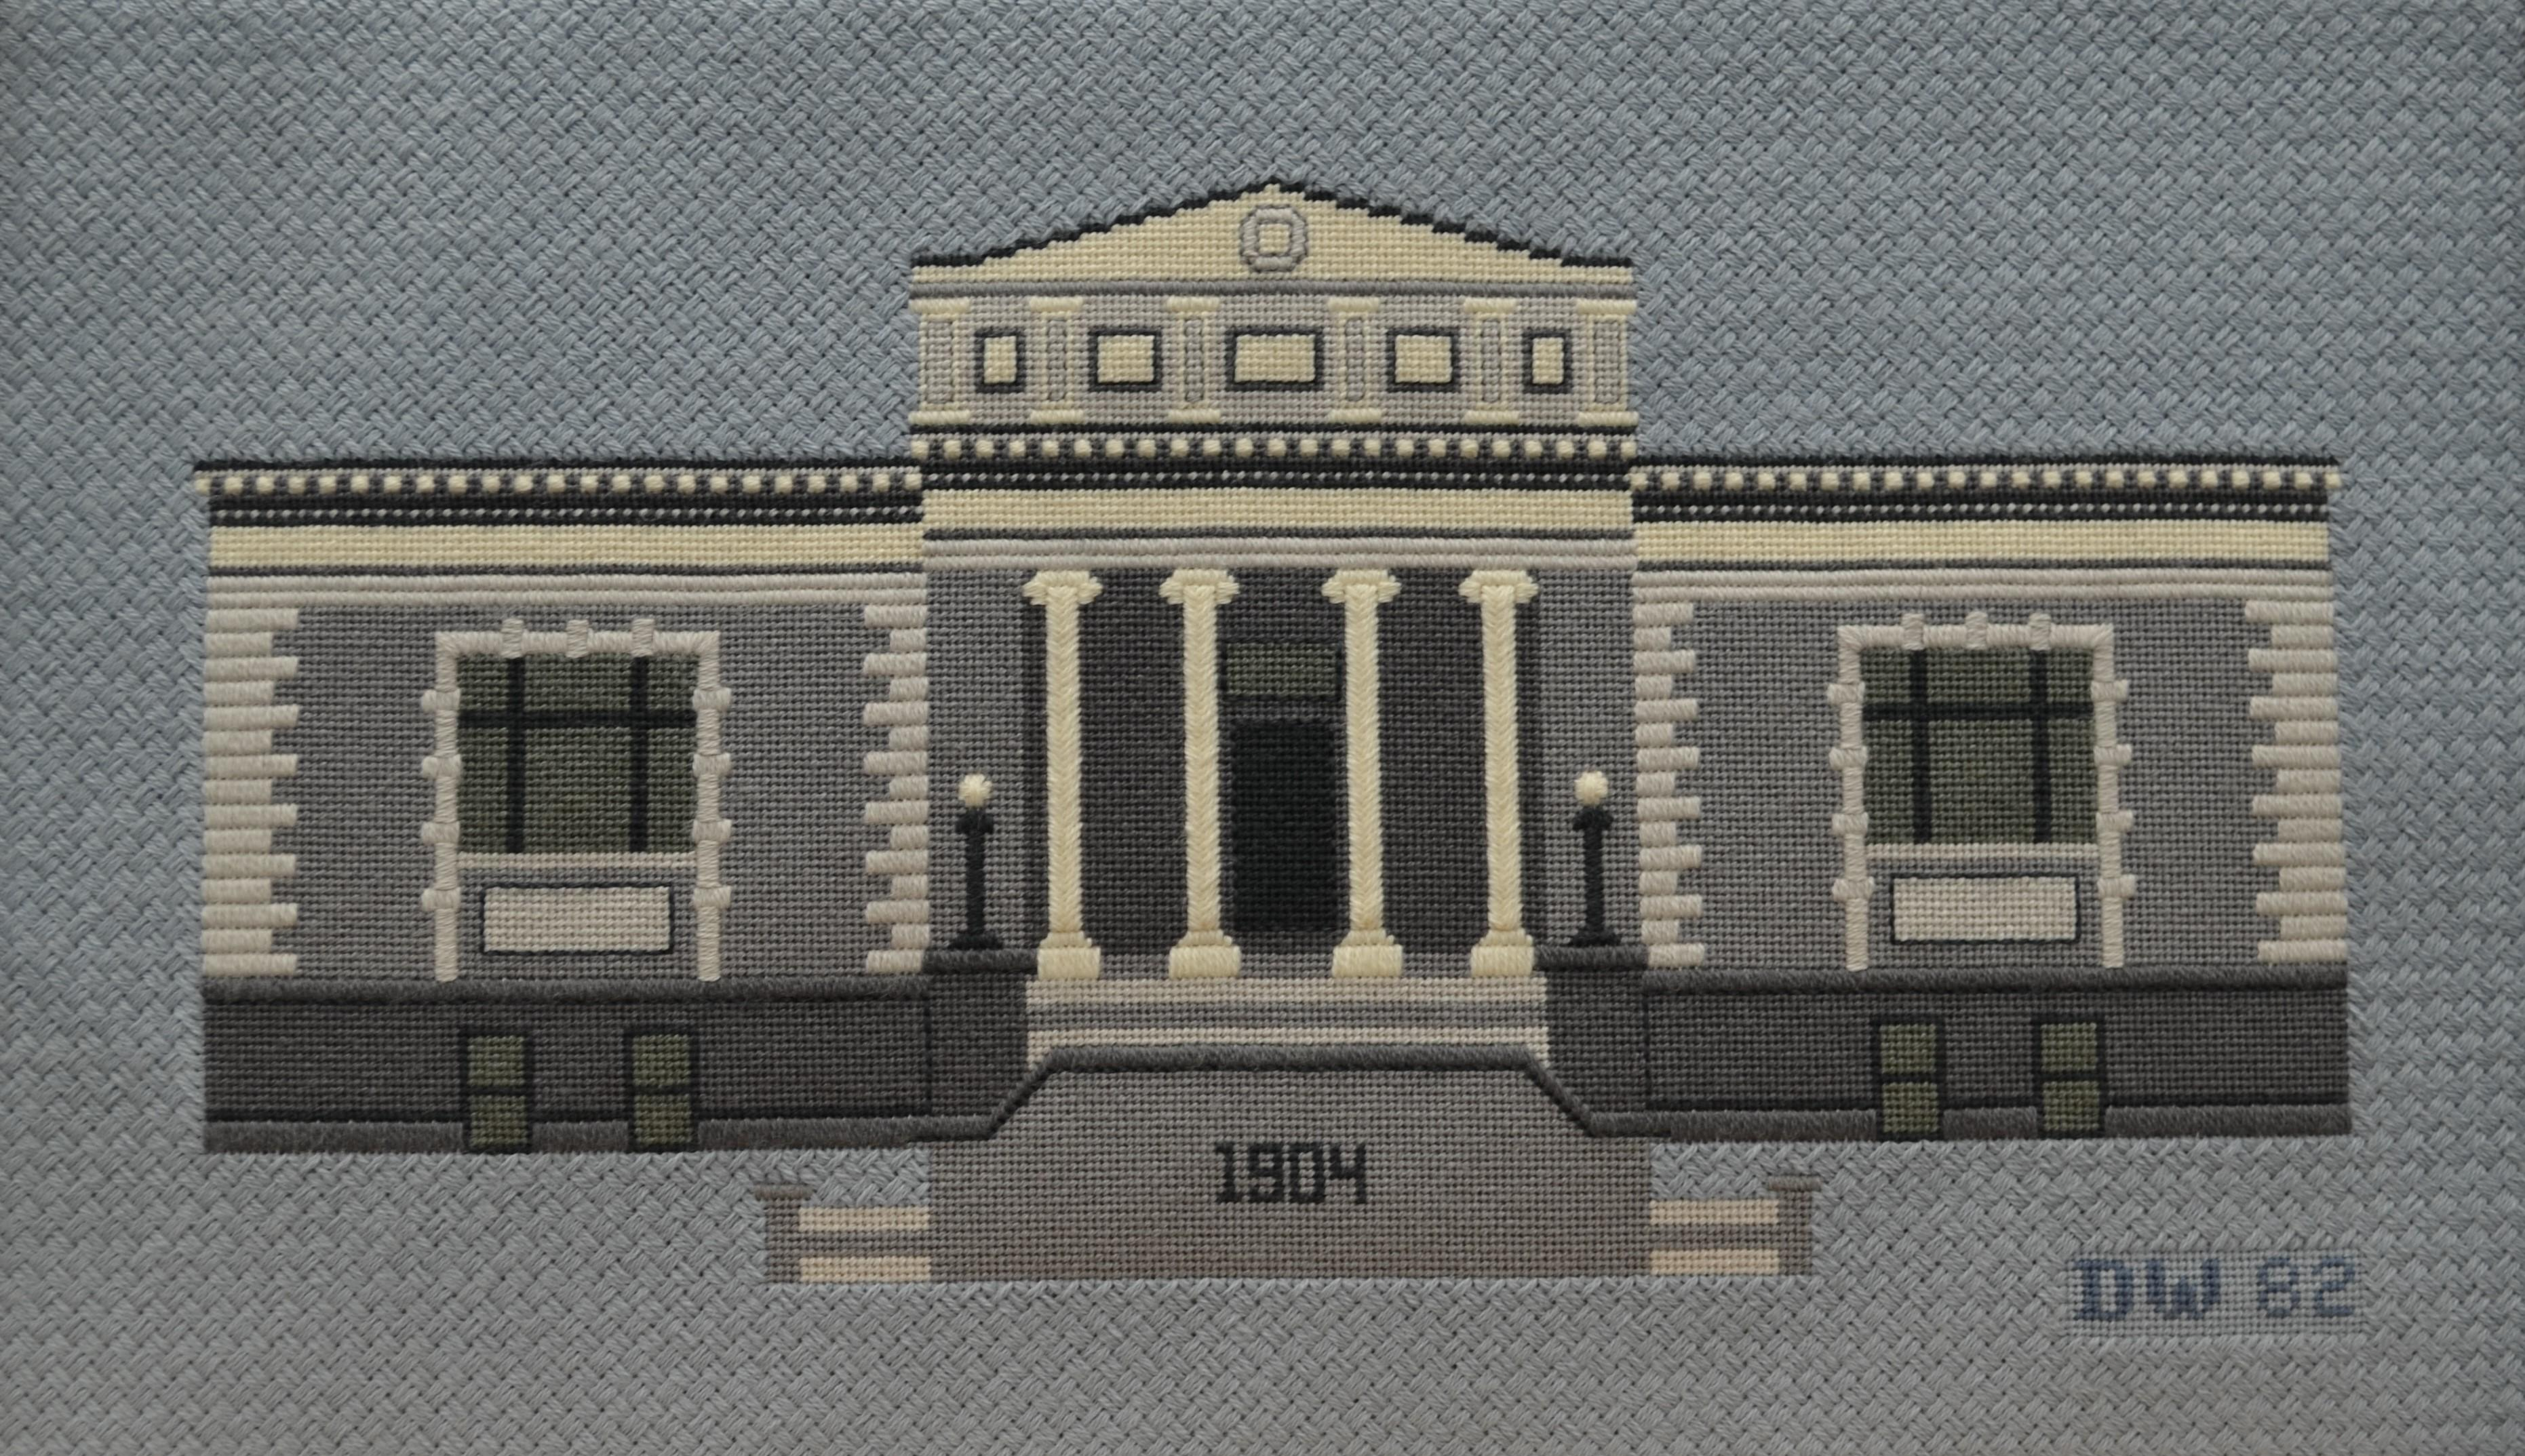 Needlepoint of the Carnegie building